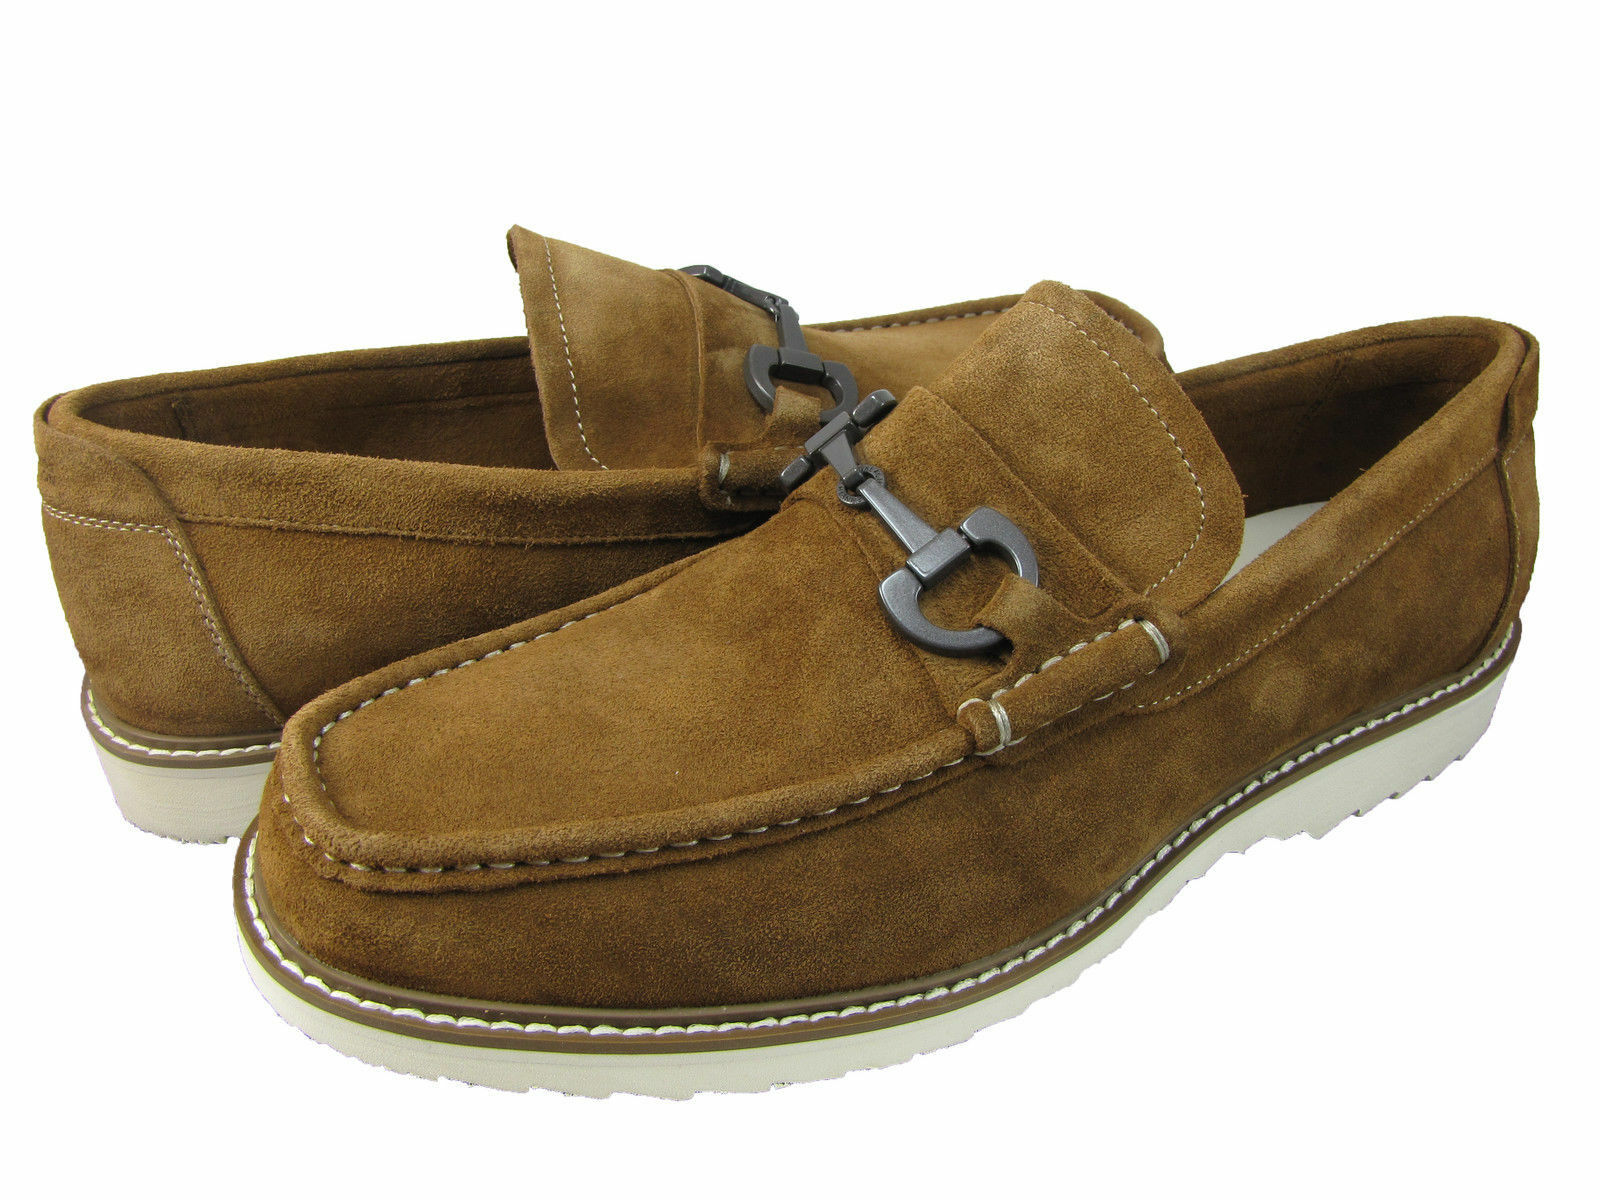 Kenneth Cole Reaction Mens Fair N Square Slip-On Casual Loafers Dress shoes